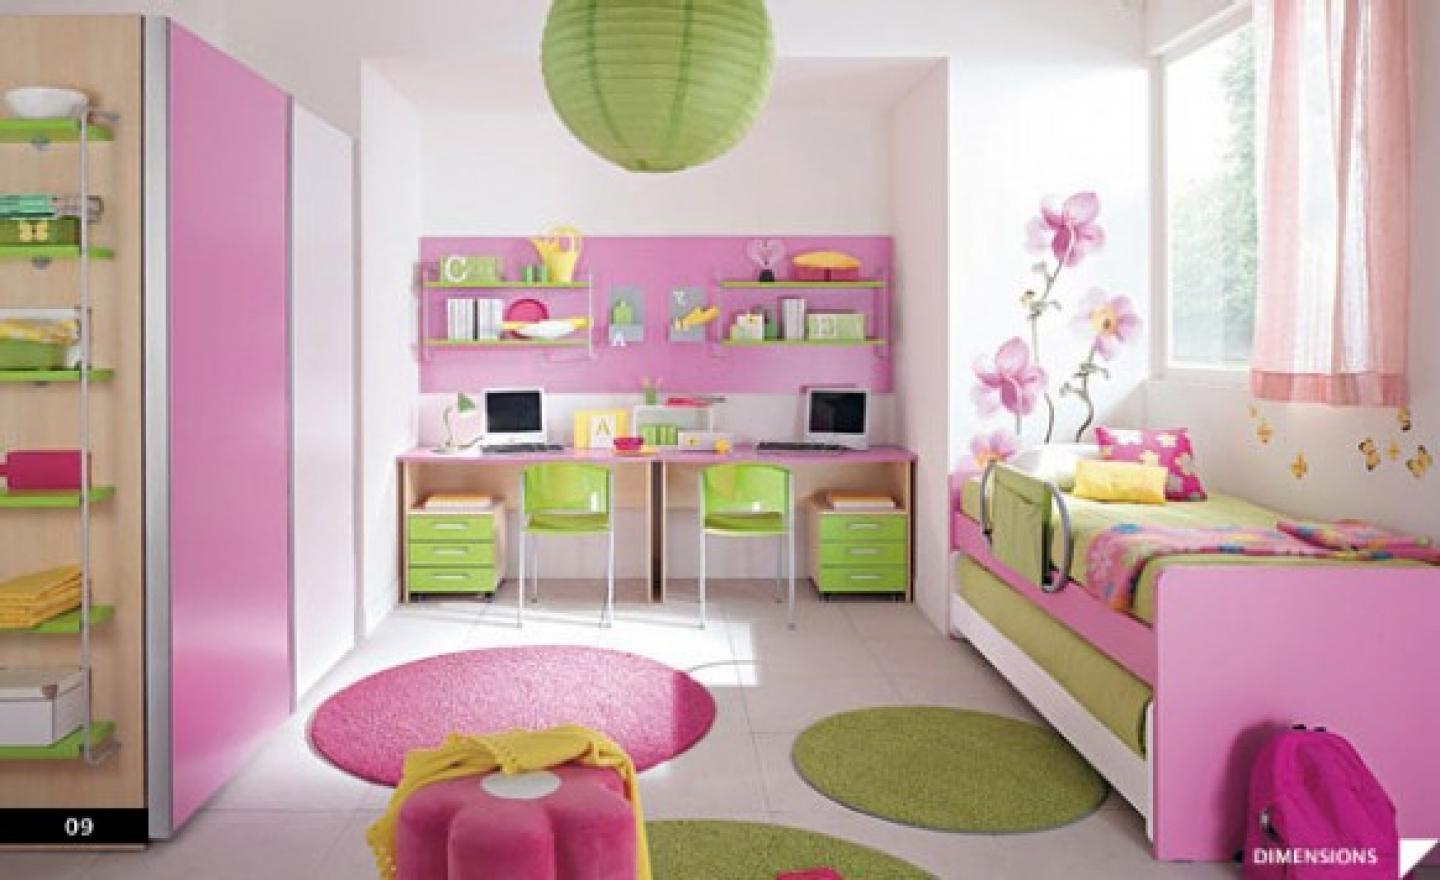 Kids Bedroom Ideas For Girls kids bedroom ideas for girls - large and beautiful photos. photo